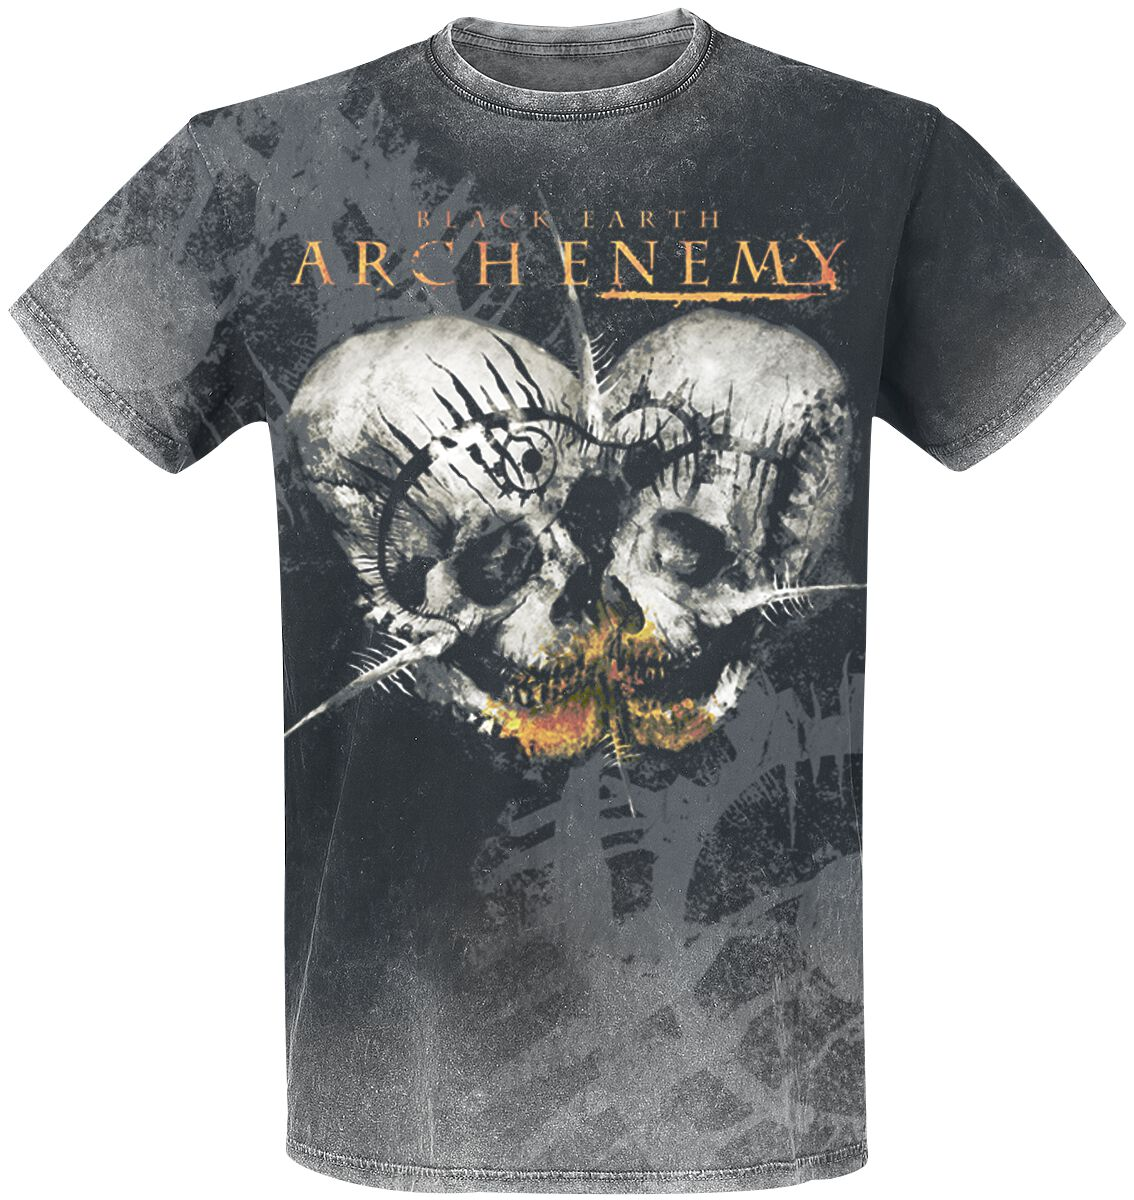 Image of   Arch Enemy Black earth T-Shirt mørk grå